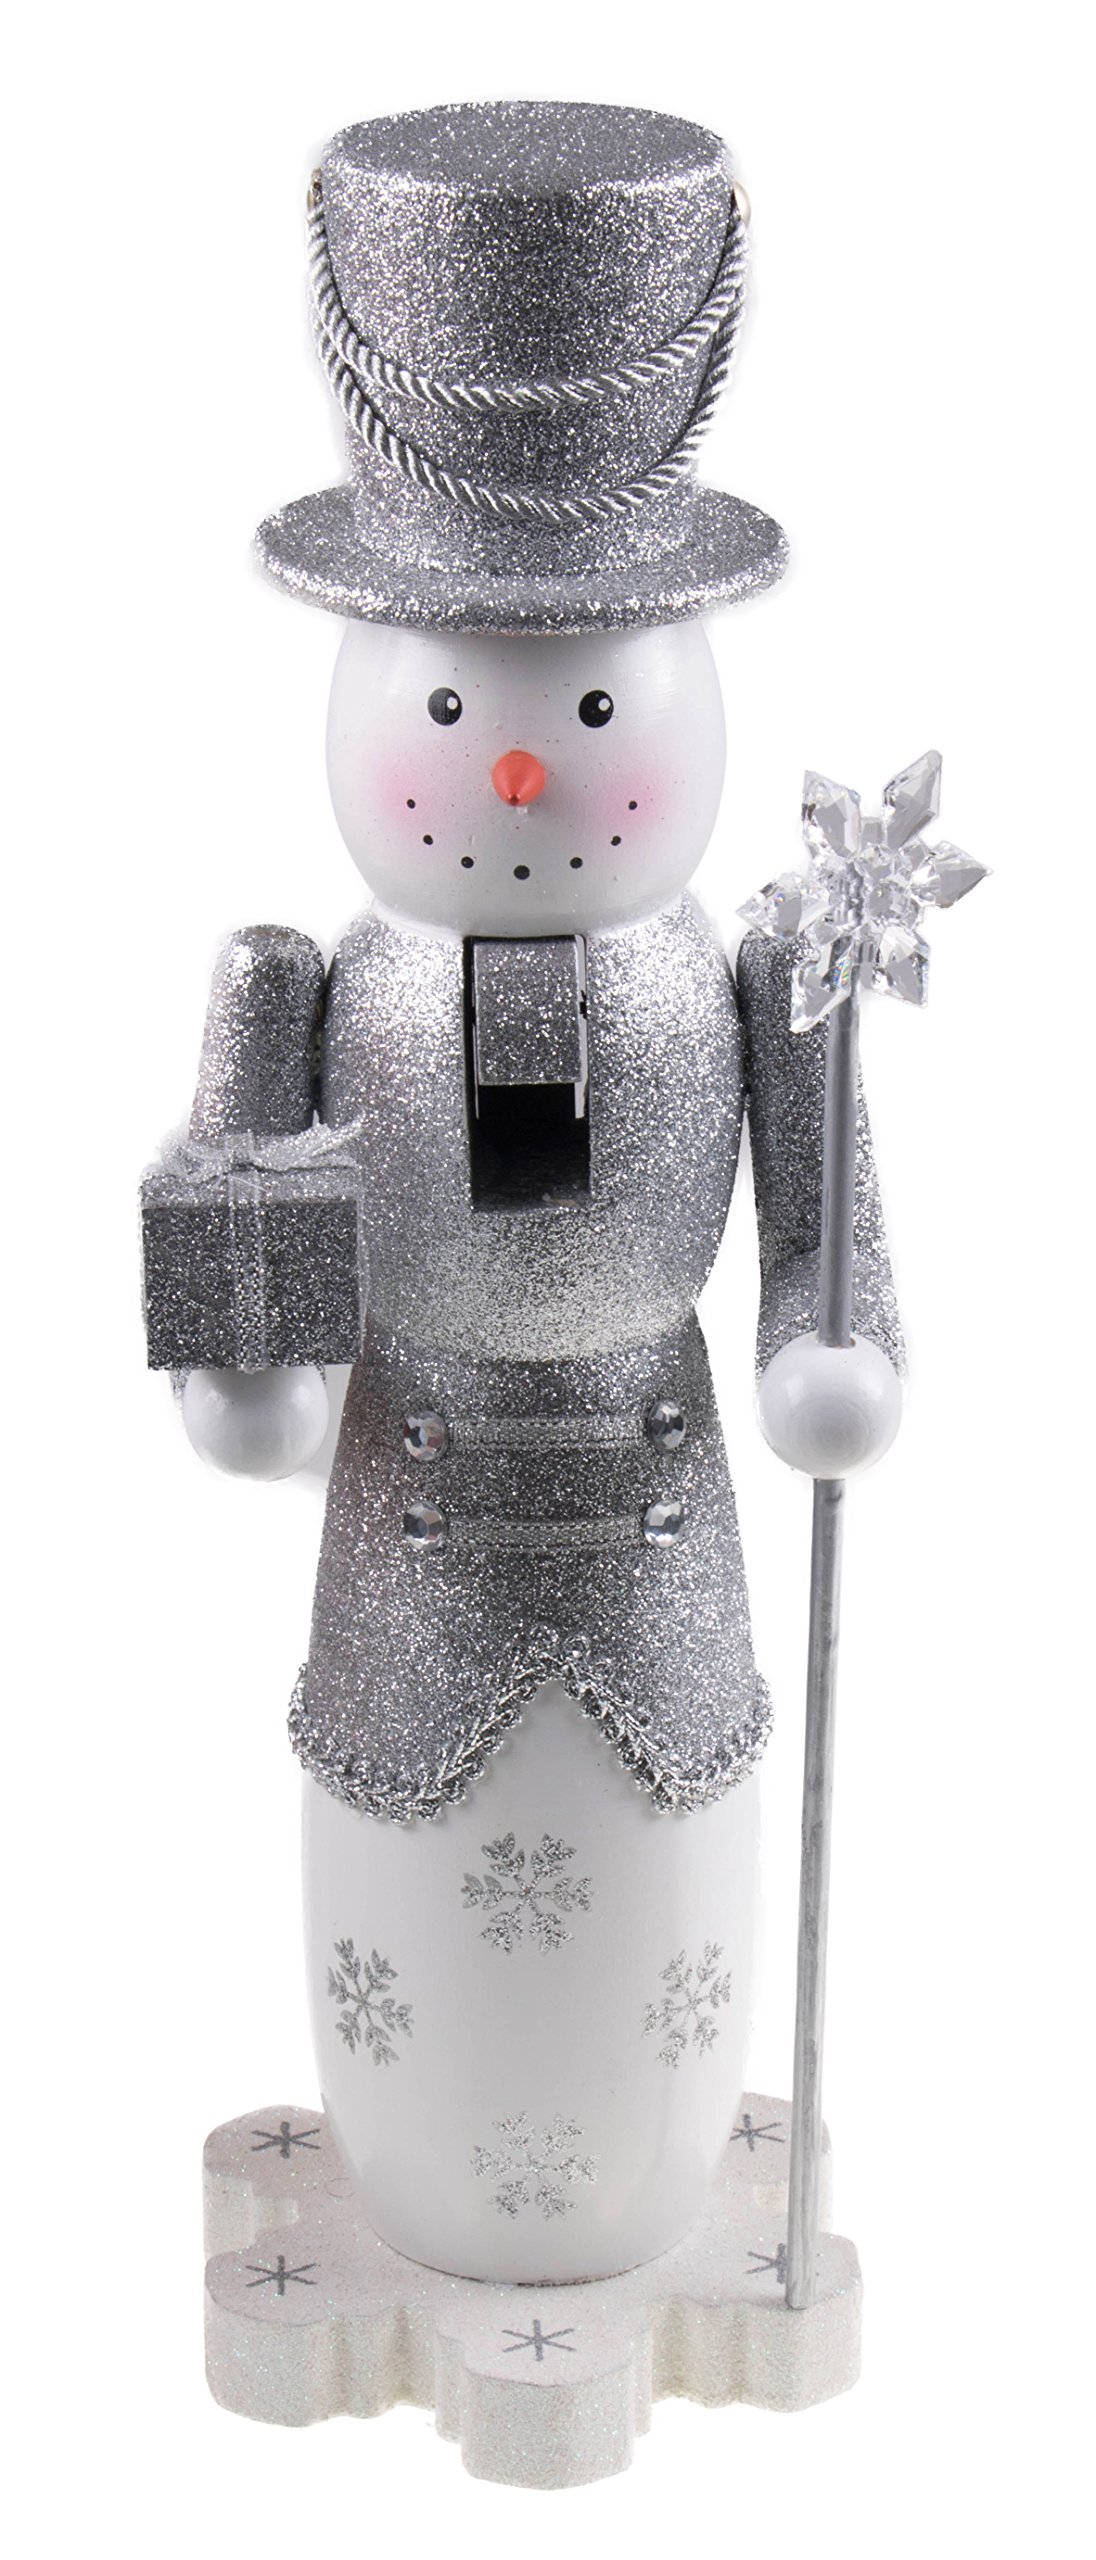 Tall Snowman Nutcracker by Clever Creations | Glittery Silver Outfit with Tophat | Holding Gift and Snowflake Scepter | Perfect for Any Collection | Festive Christmas Decor | 14'' Tall